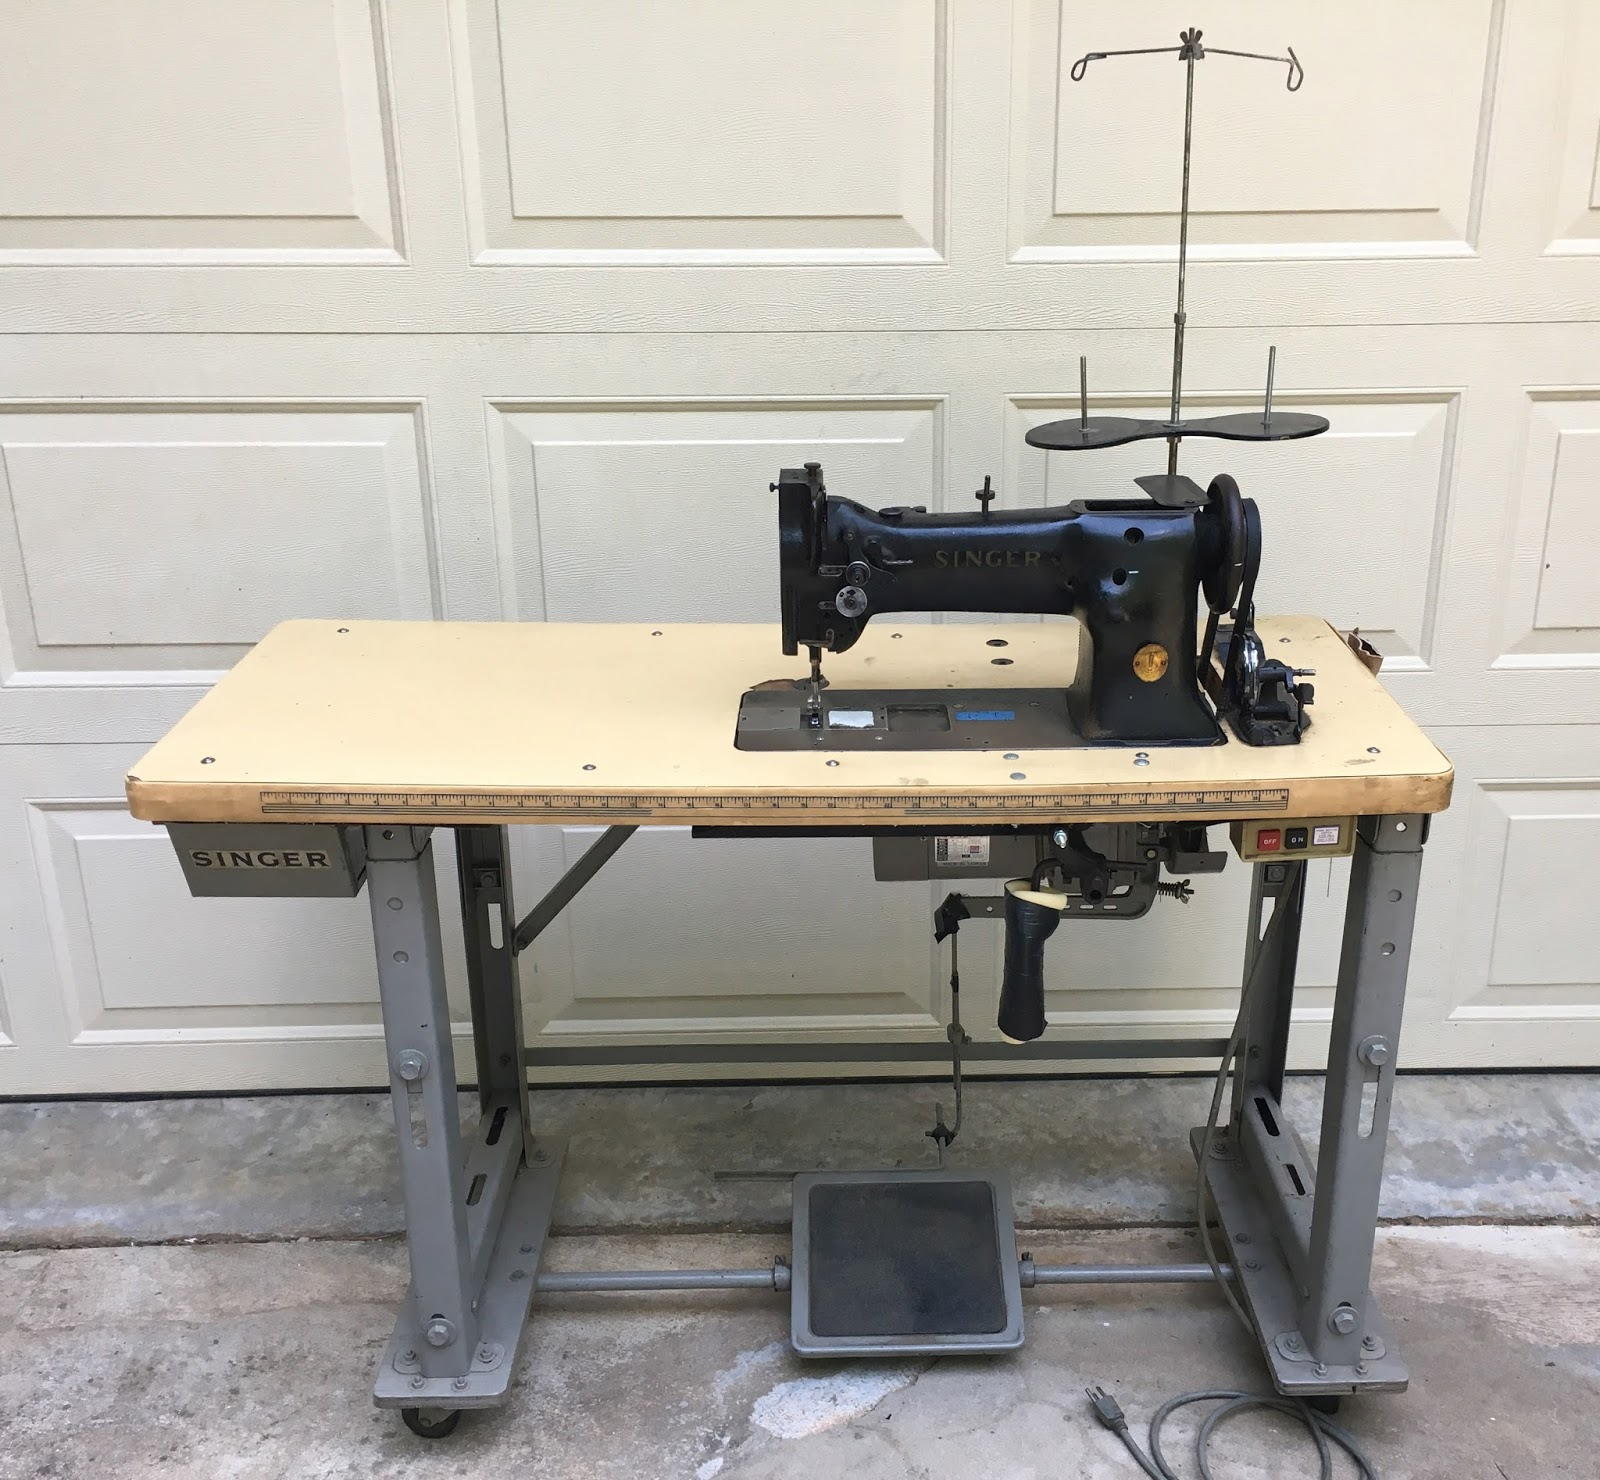 how to open singer sewing machine